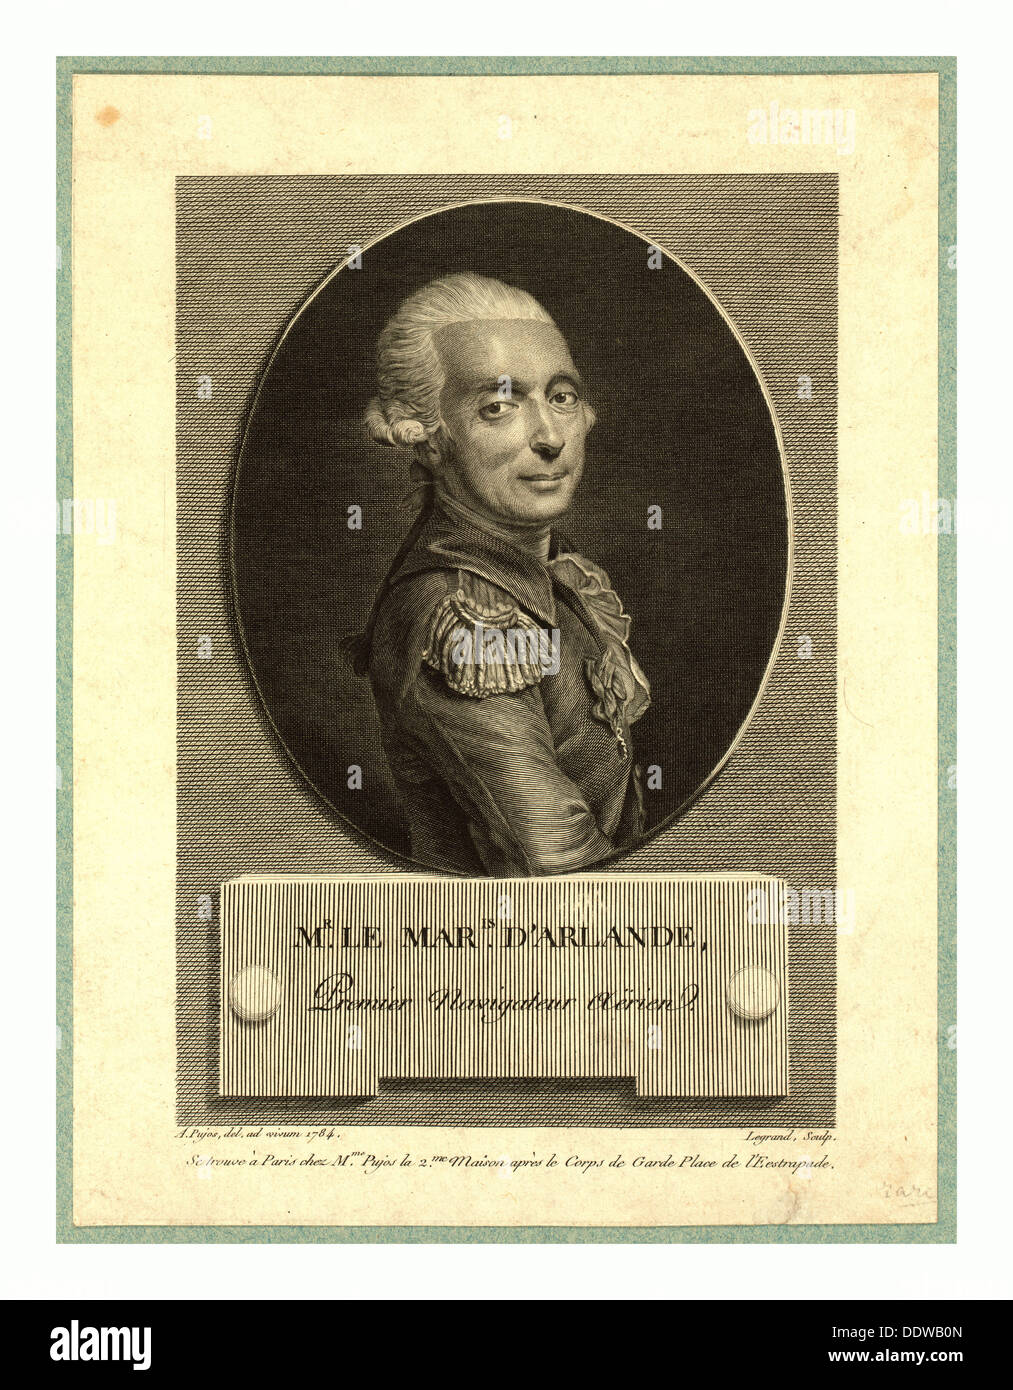 Mr. le maris. d'Arlande, first aerial navigator,  Pujos, André, 1738-1788, artist, Half-length portrait of French balloonist - Stock Image